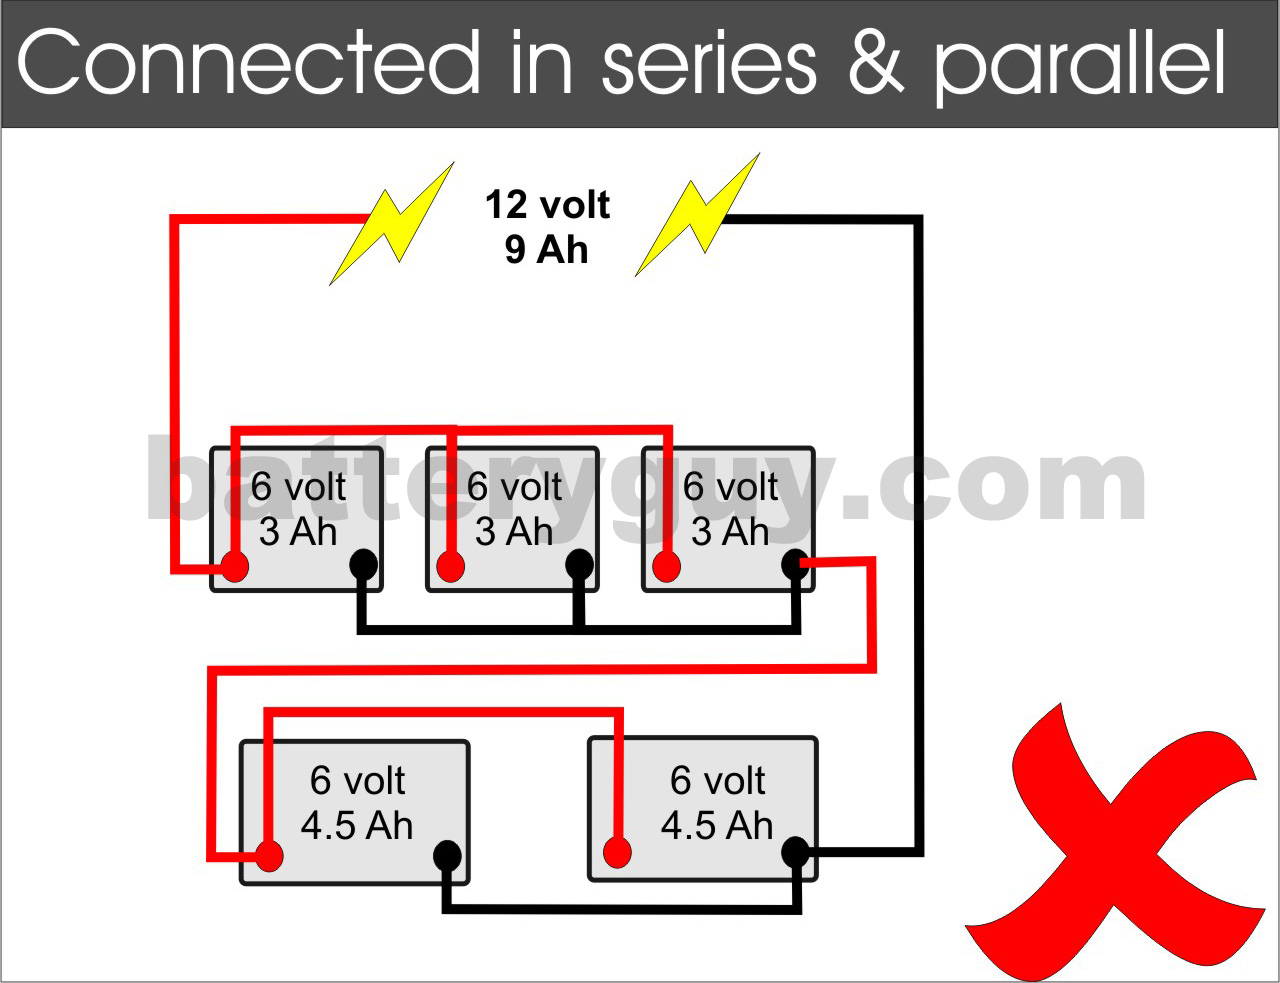 hight resolution of ampere hour batteries connected in series and parallel incorrectly